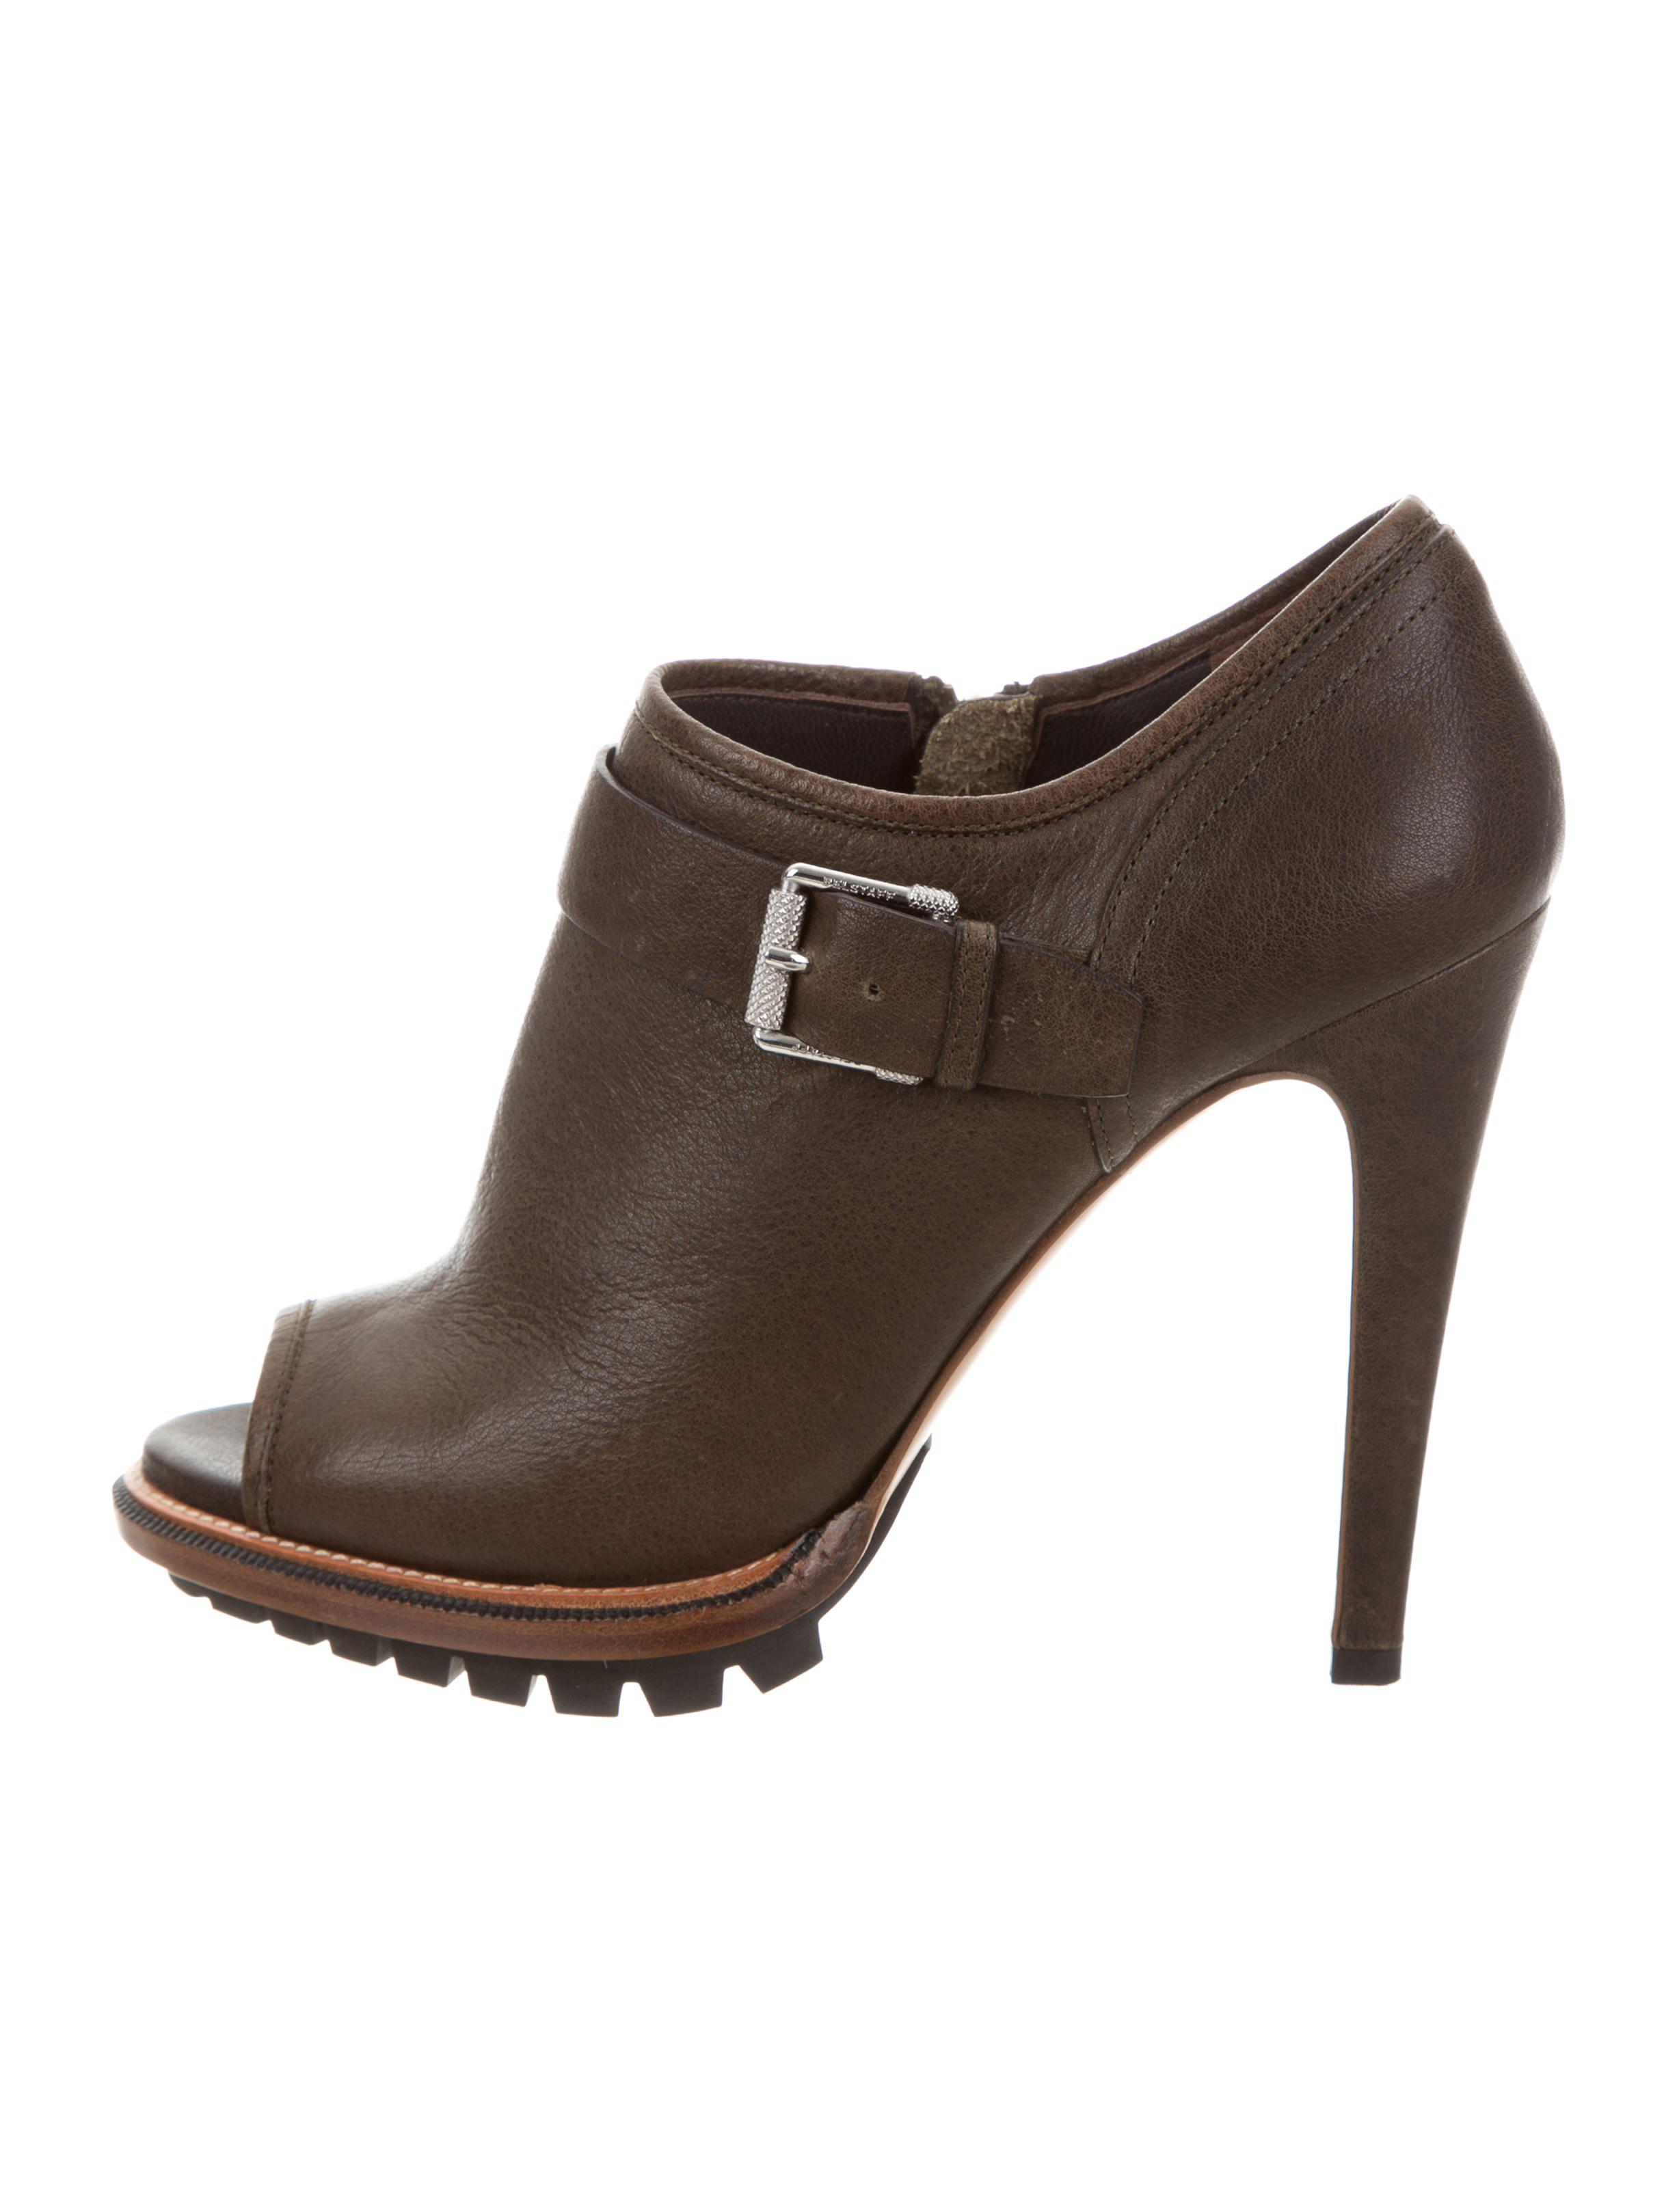 cheap sale free shipping extremely for sale Belstaff Shaftesbury Peep-Toe Booties w/ Tags big sale sale online sale original cheap wholesale fWRfC